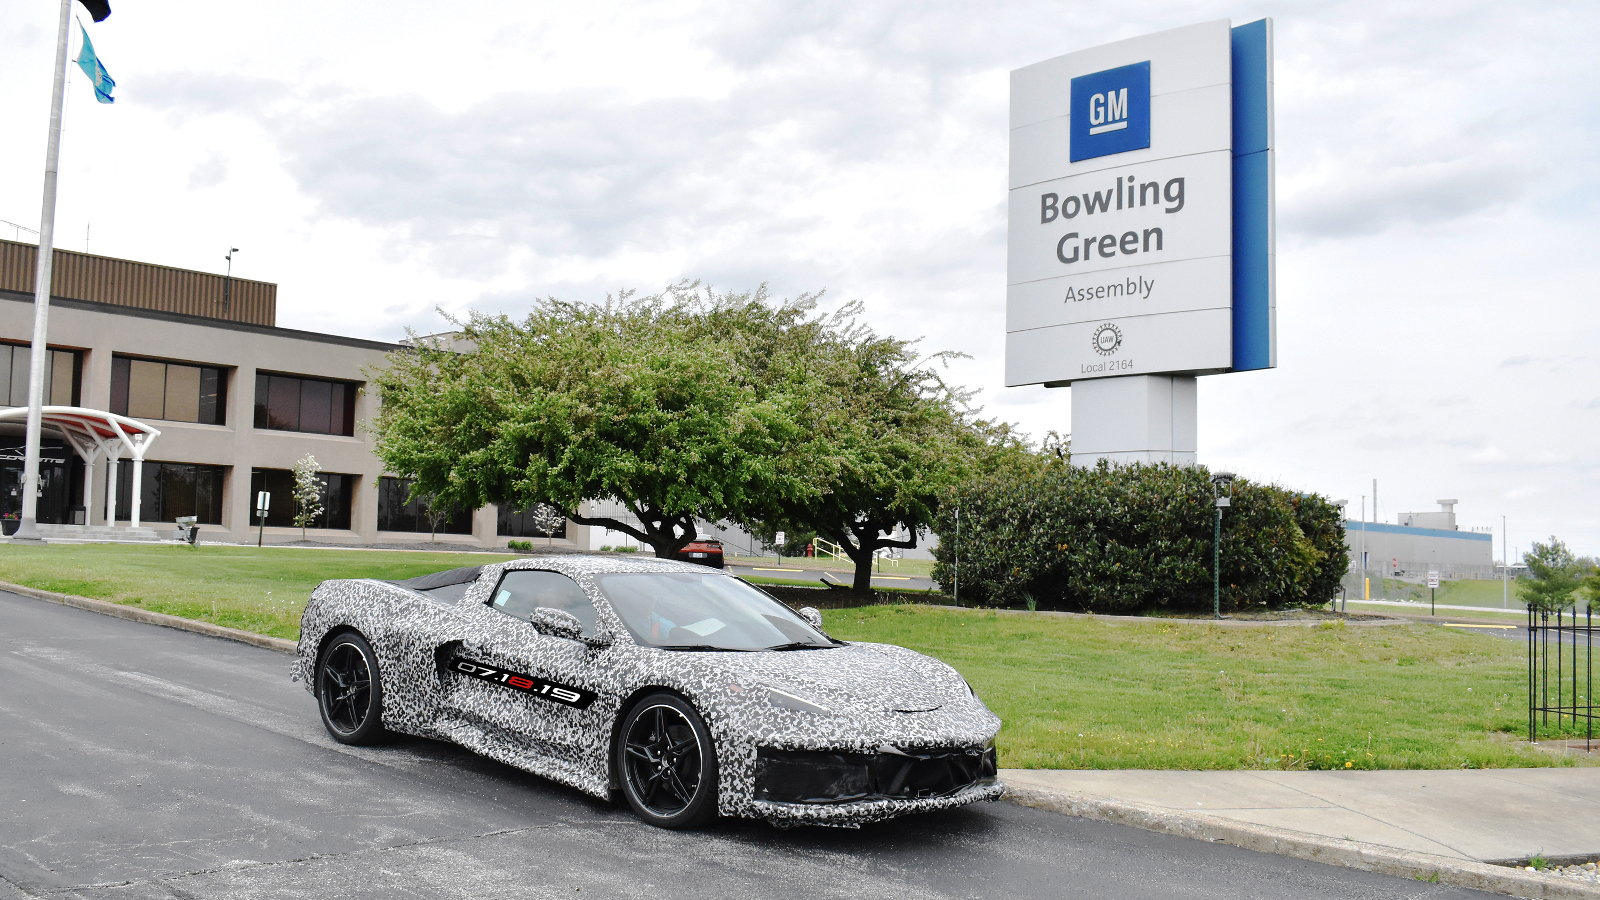 Last C7 Corvette to be Auctioned This Summer for Charity